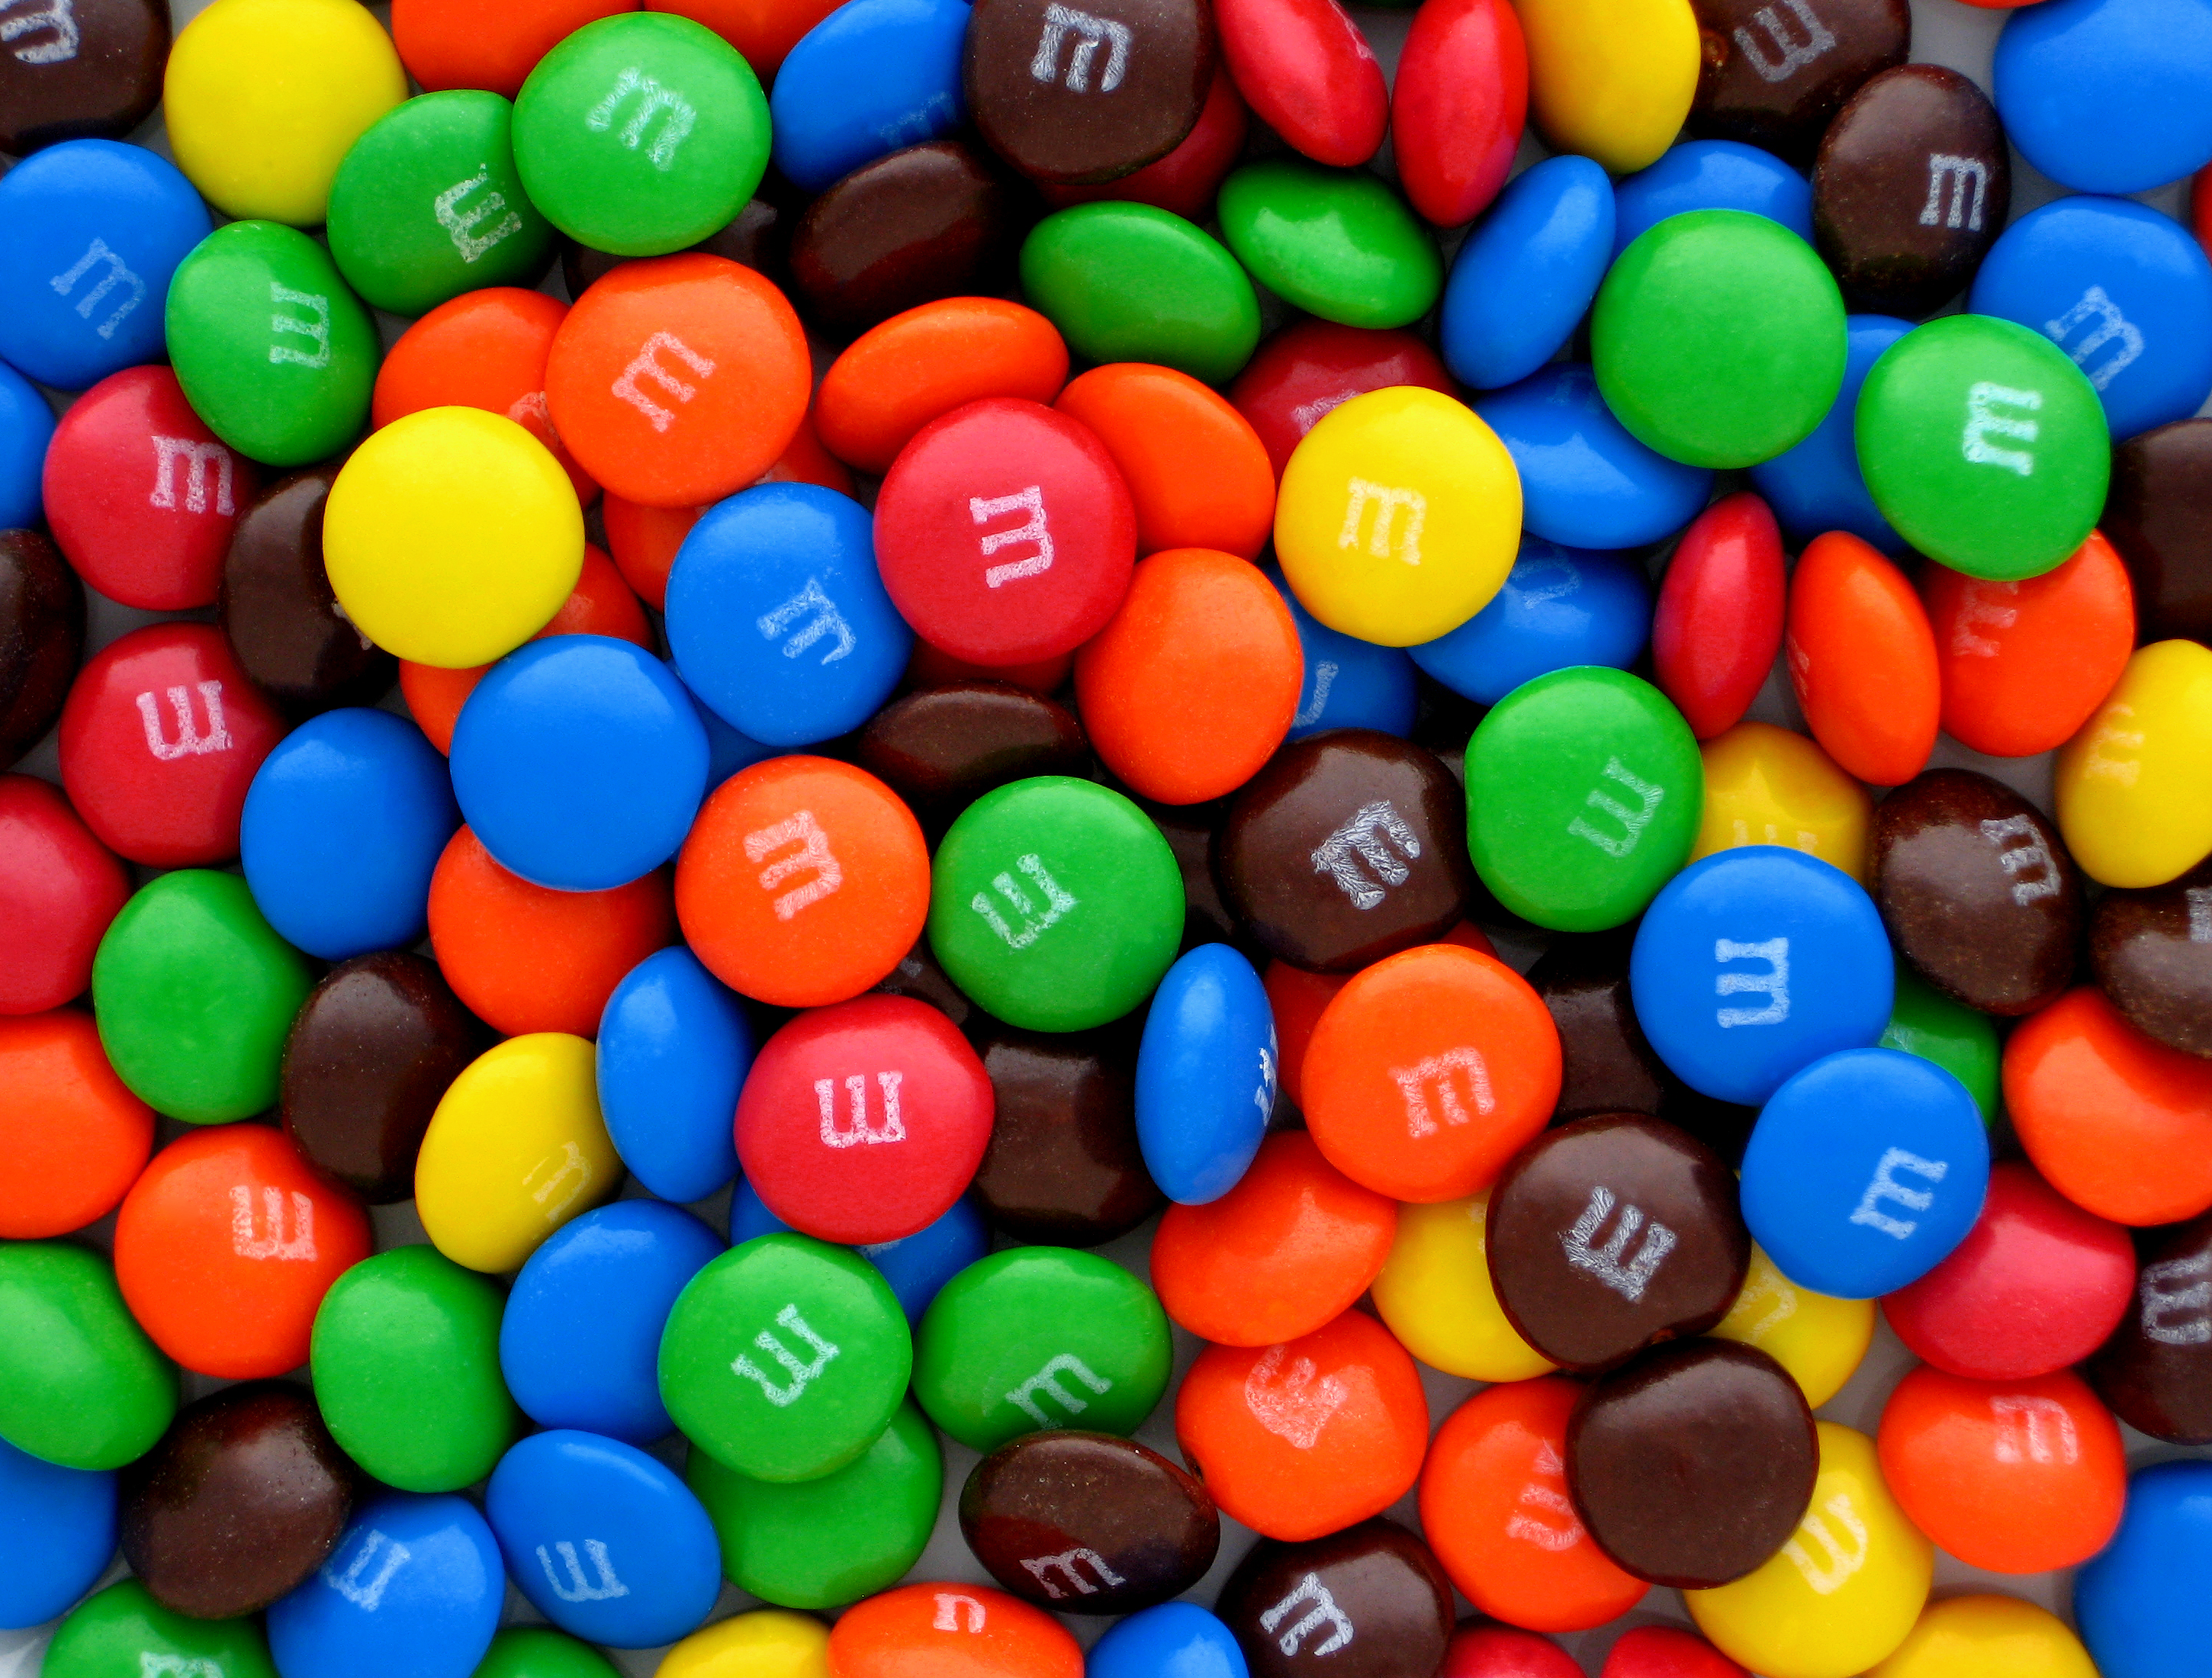 Gamification of product advertising: M&Ms